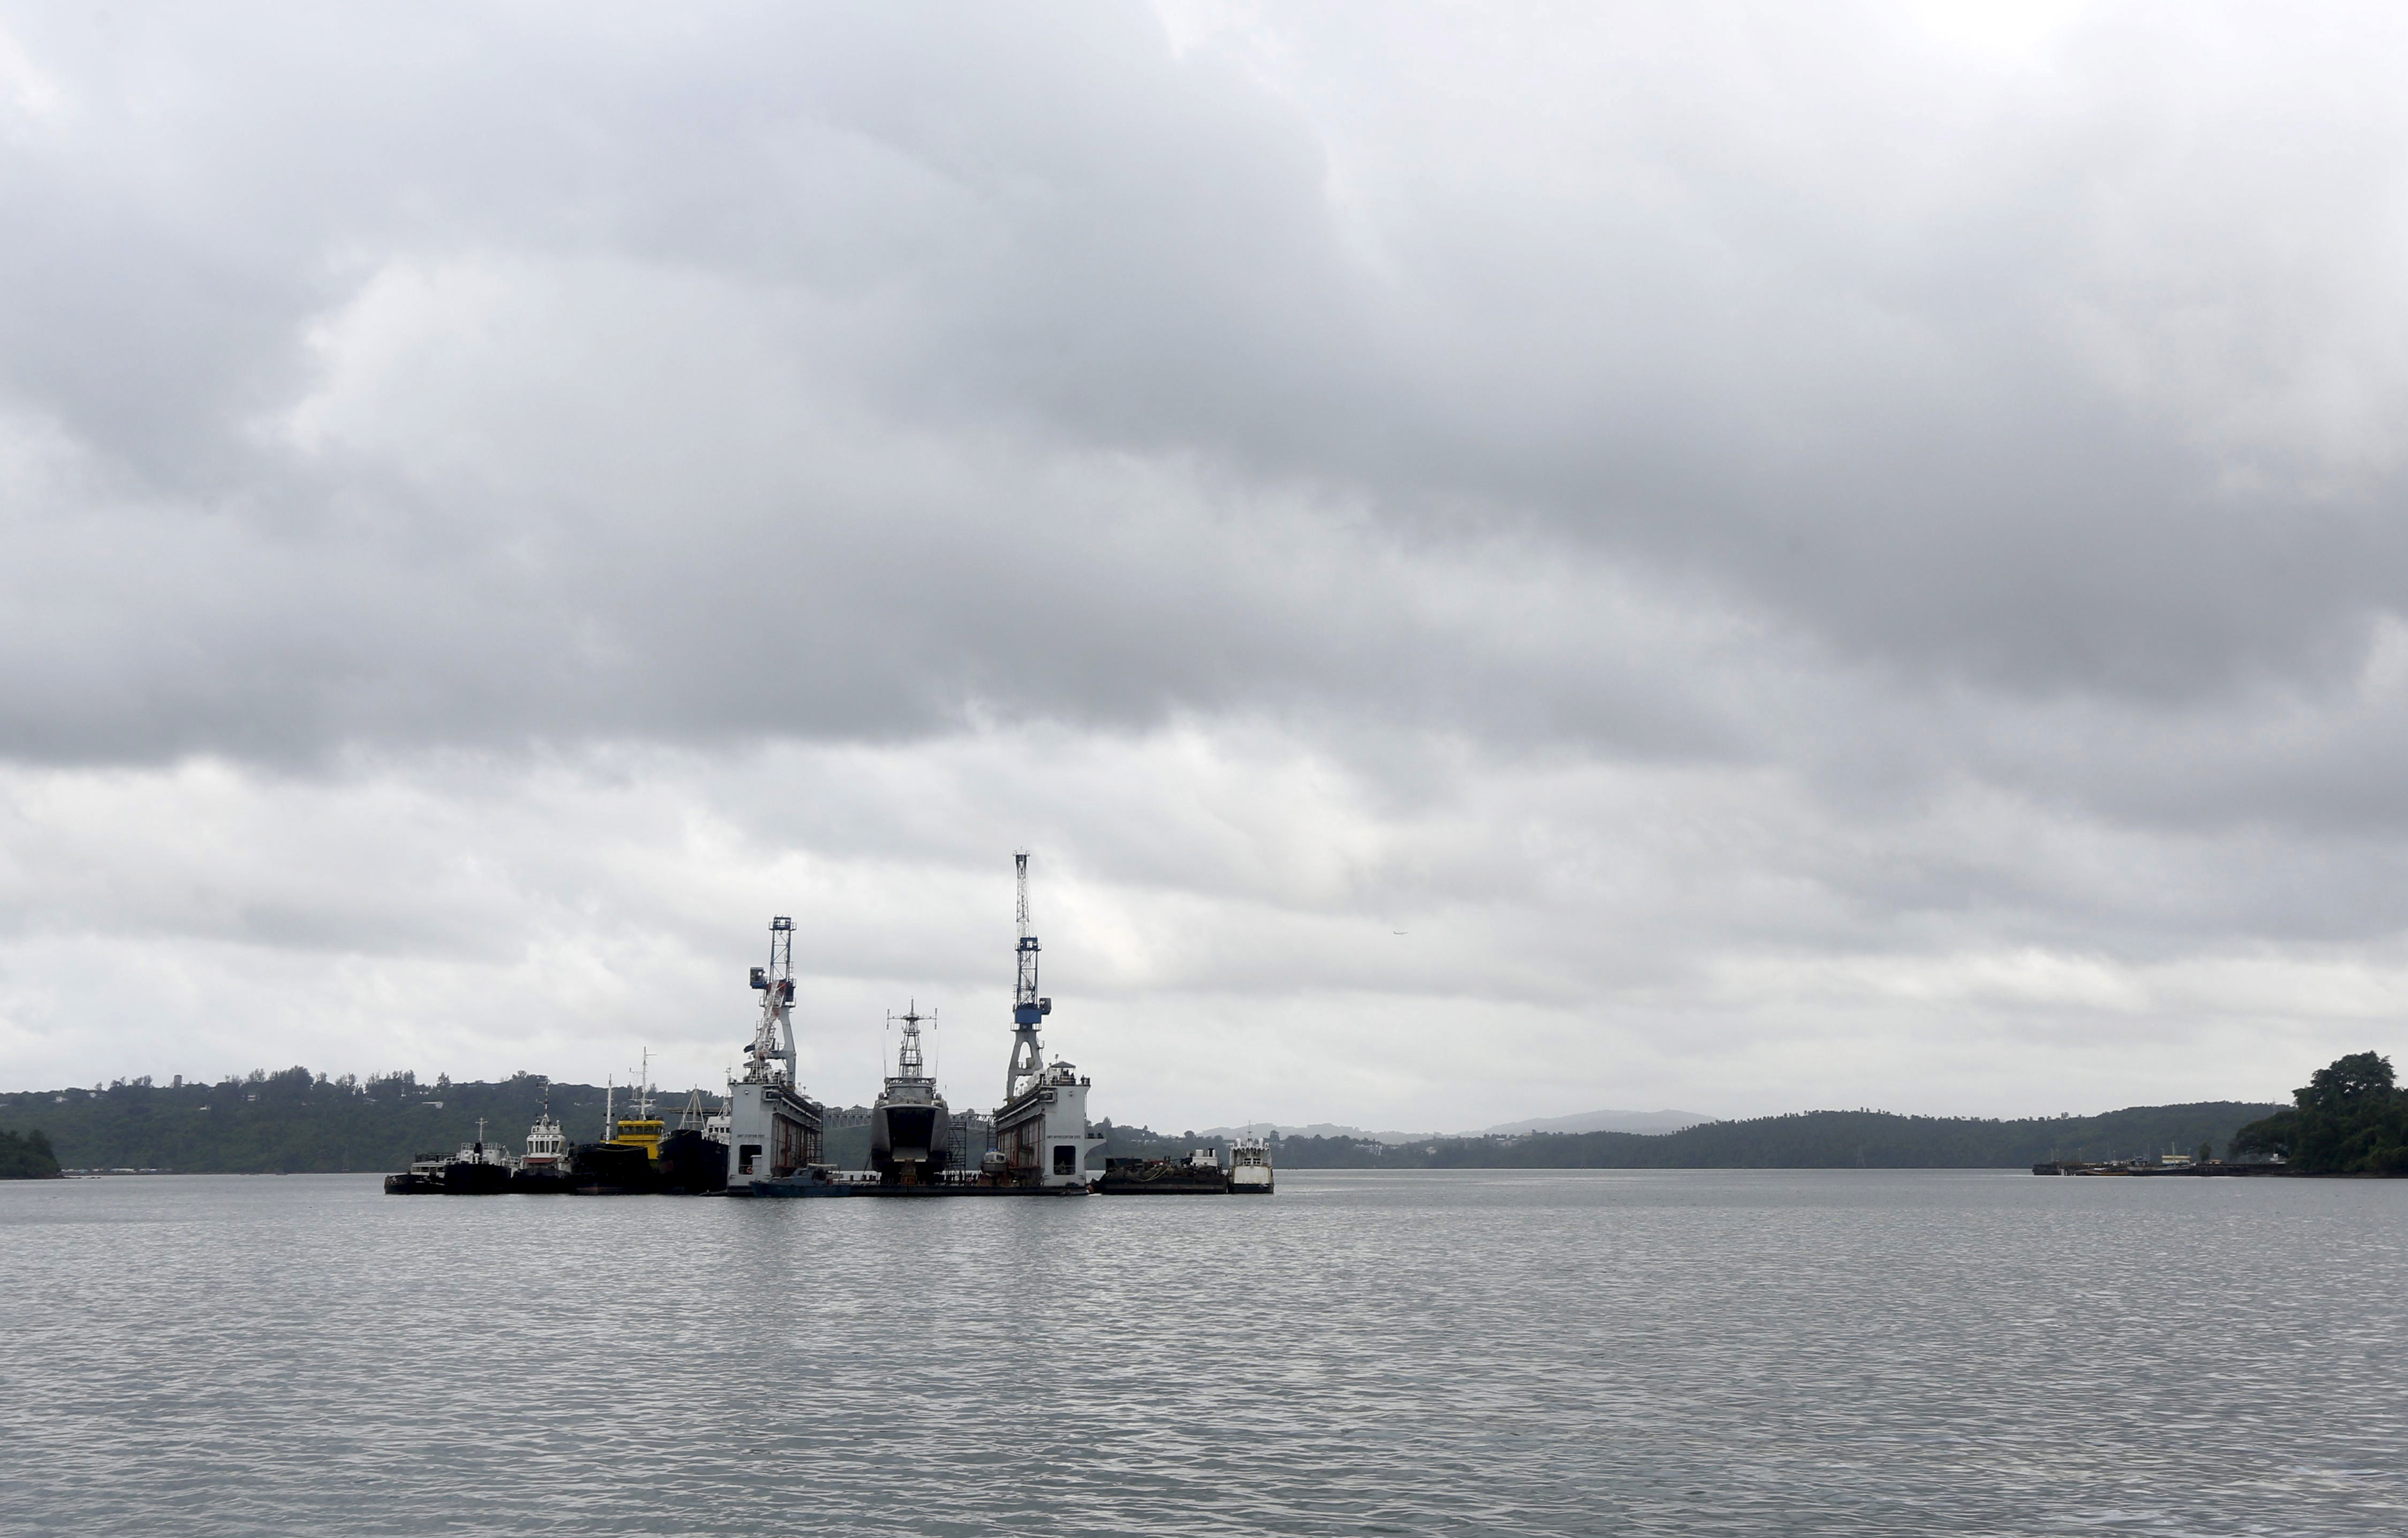 Japan's contributions to maritime stability in the Bay of Bengal